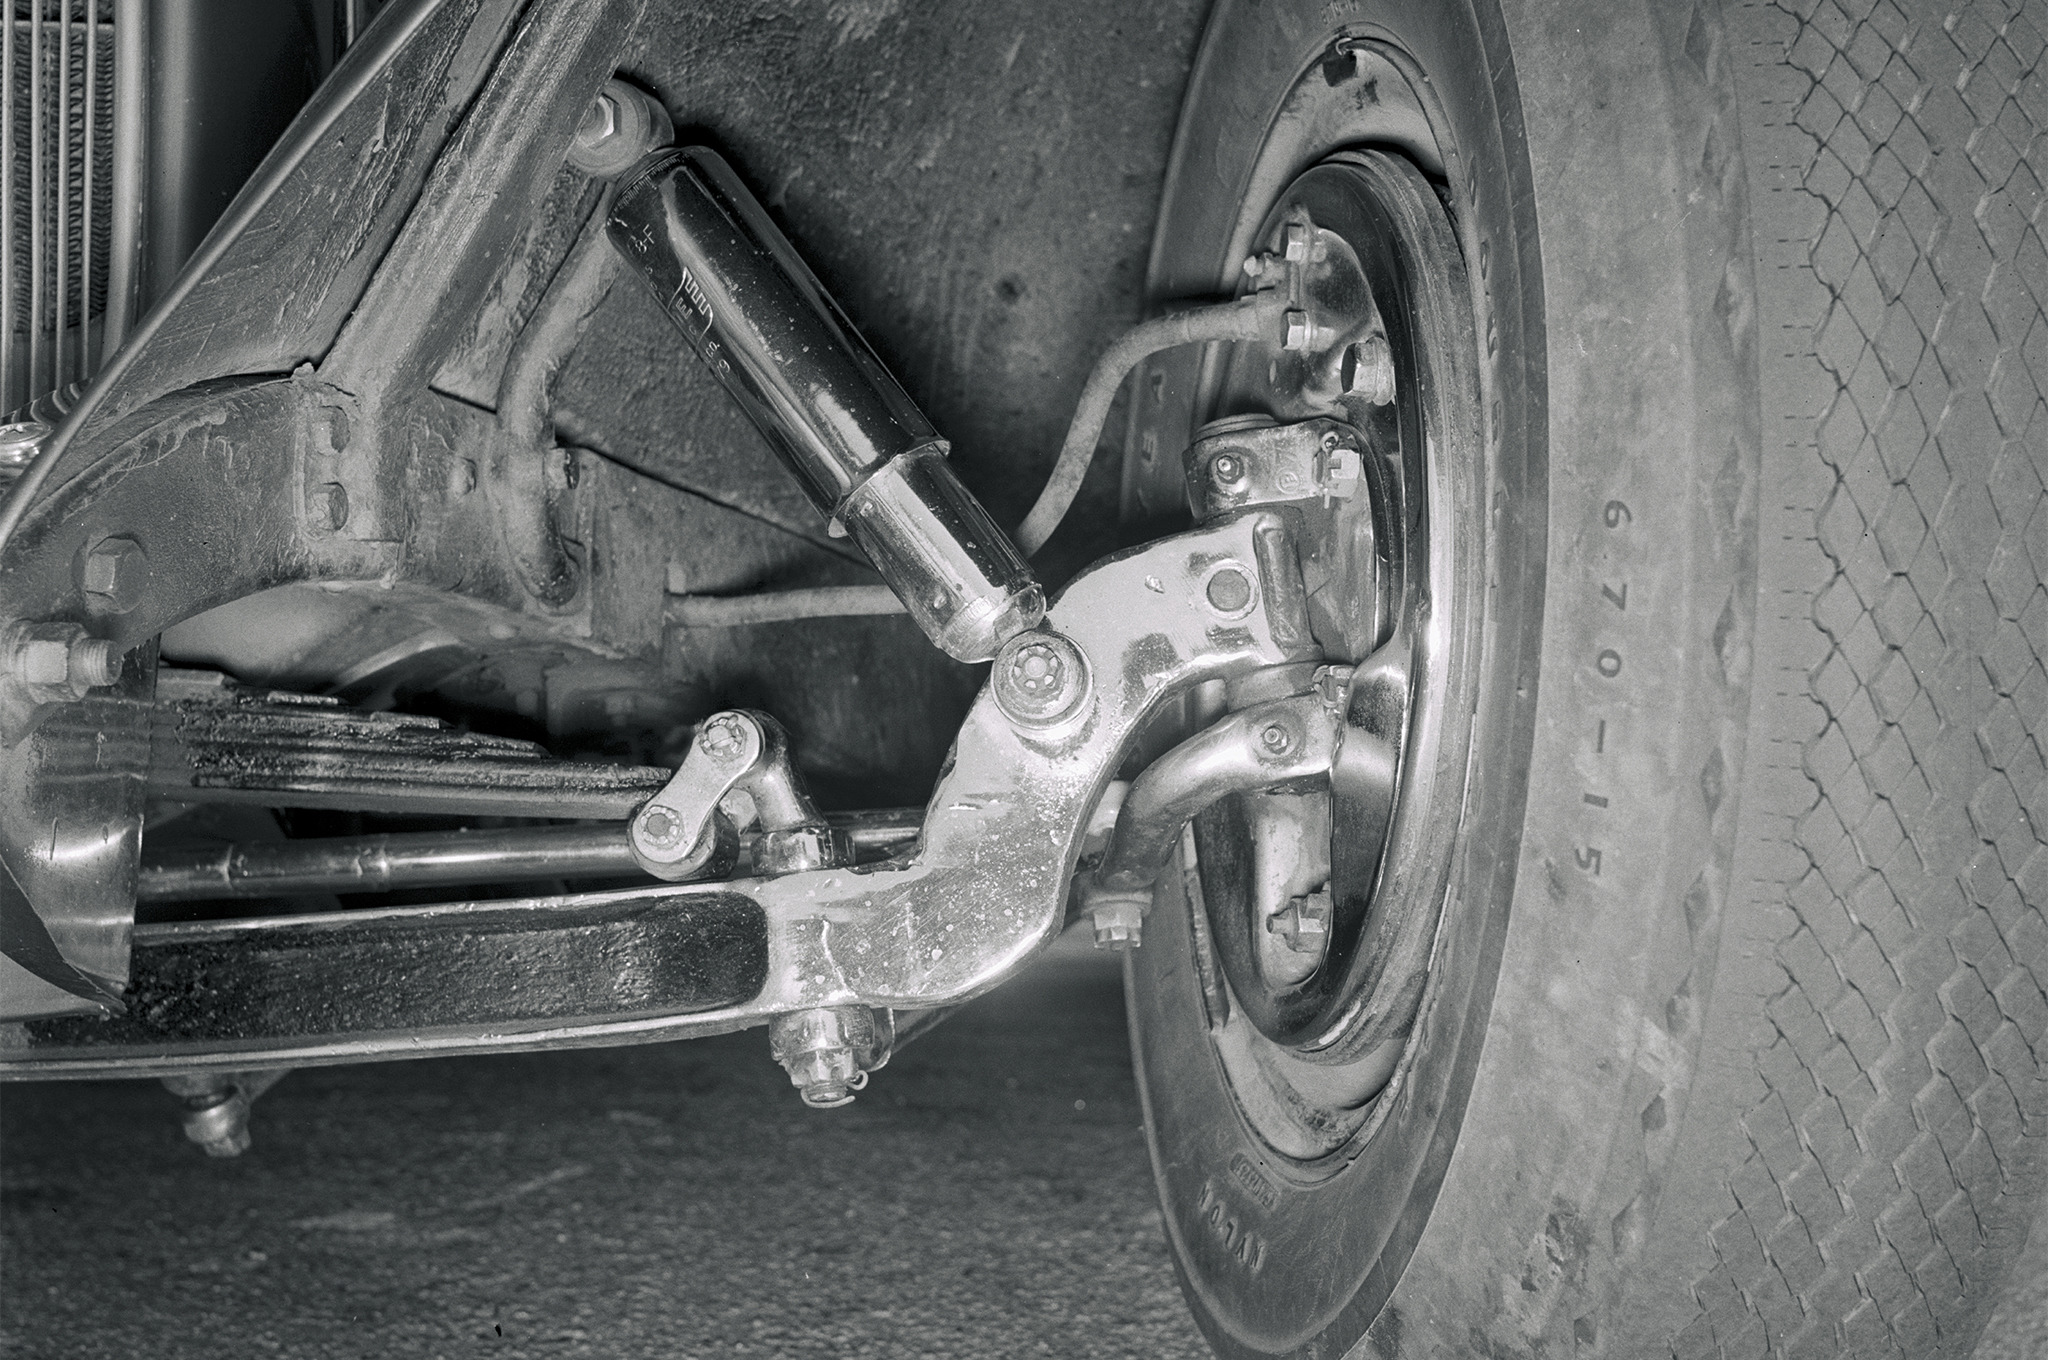 Breece built the car's front suspension using a 2-1/2-inch dropped '32 axle, a '32 spring, '40 Ford spindles, and Rambler shock absorbers.